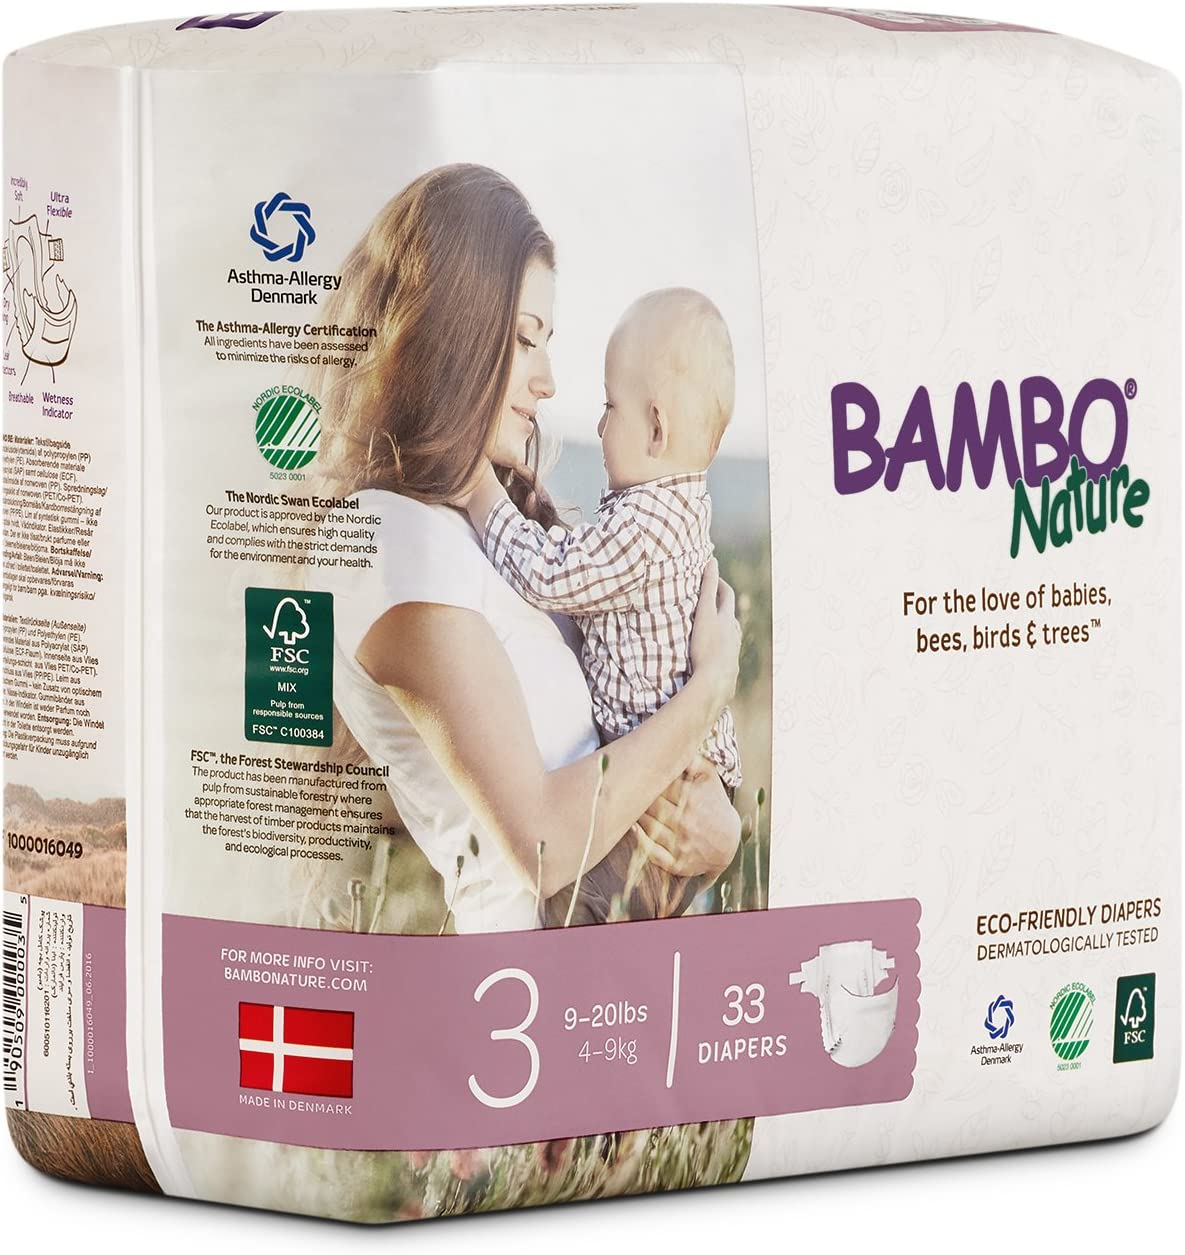 30 Count Size 2 Bambo Nature Premium Baby Diapers 7-13 lbs